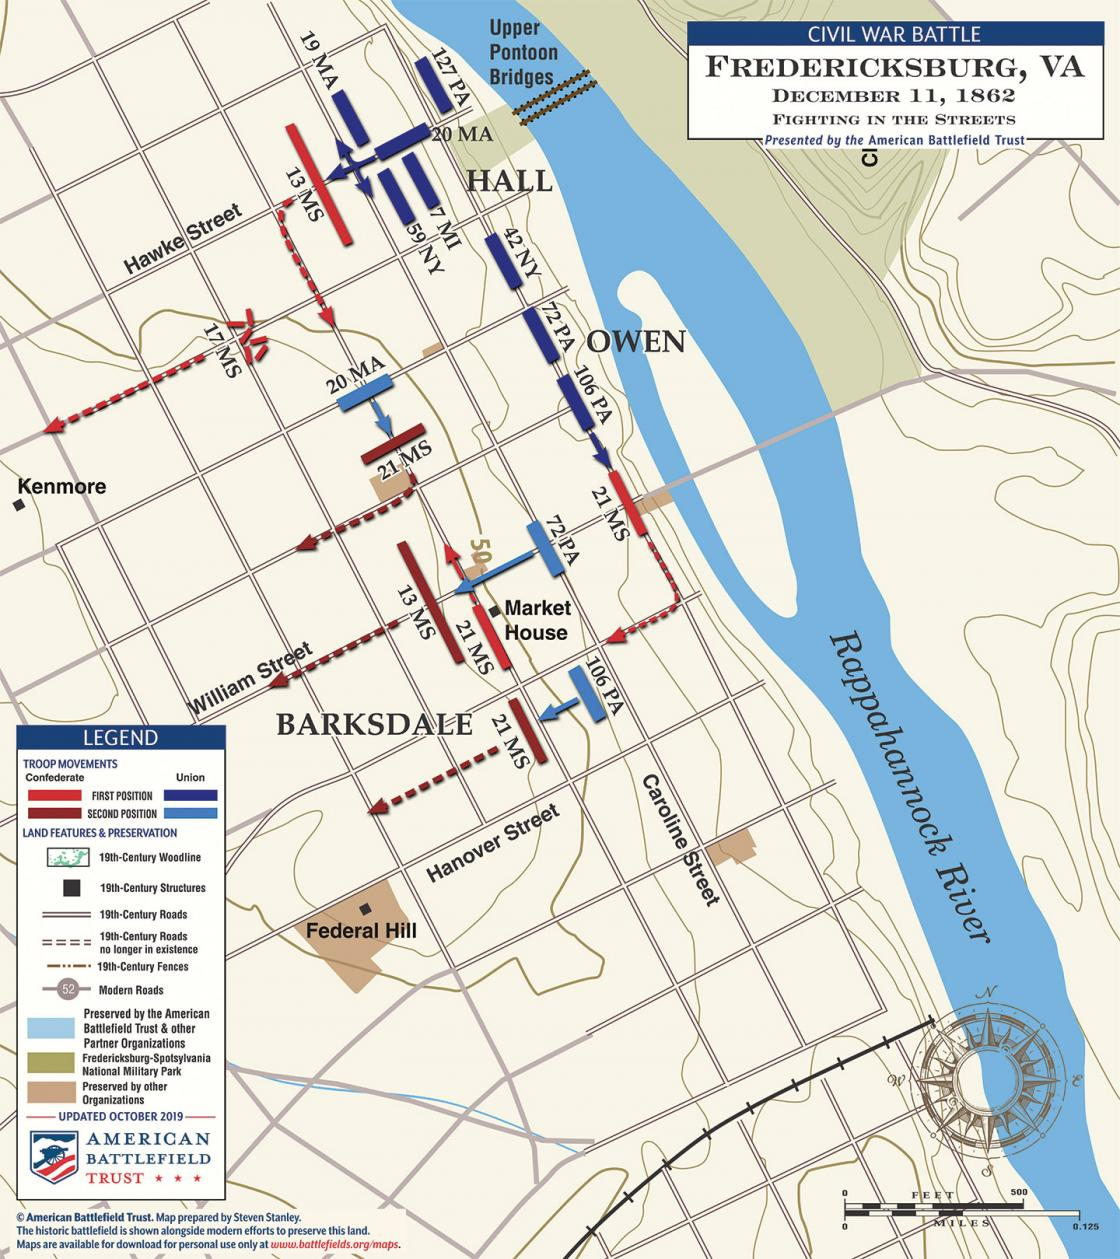 Fredericksburg - Fighting in the Streets - December 11, 1862 (June 2020)